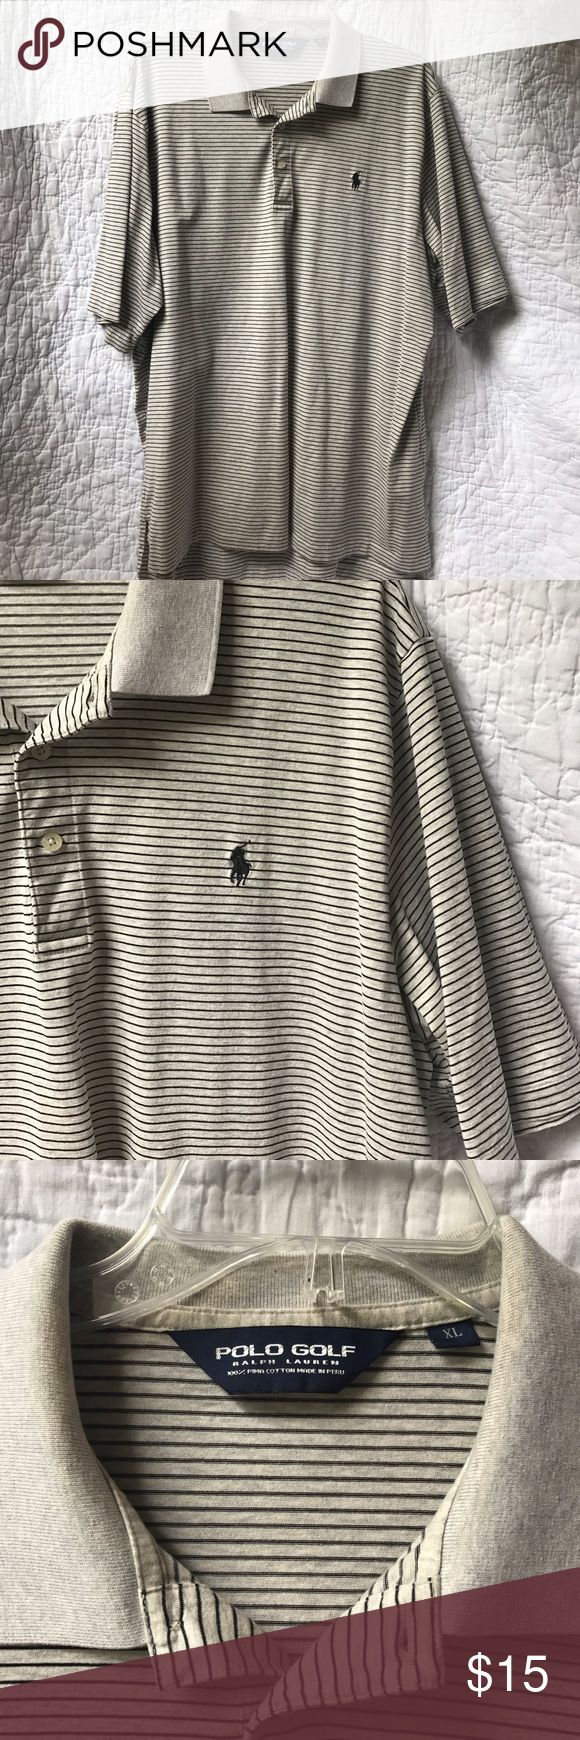 Ralph Lauren Polo Golf Shirt •Ralph Lauren •Polo Golf Shirt •Men's Size XL •Minor Discoloration on Inside of Collar Polo By Ralph Lauren Shirts Polos